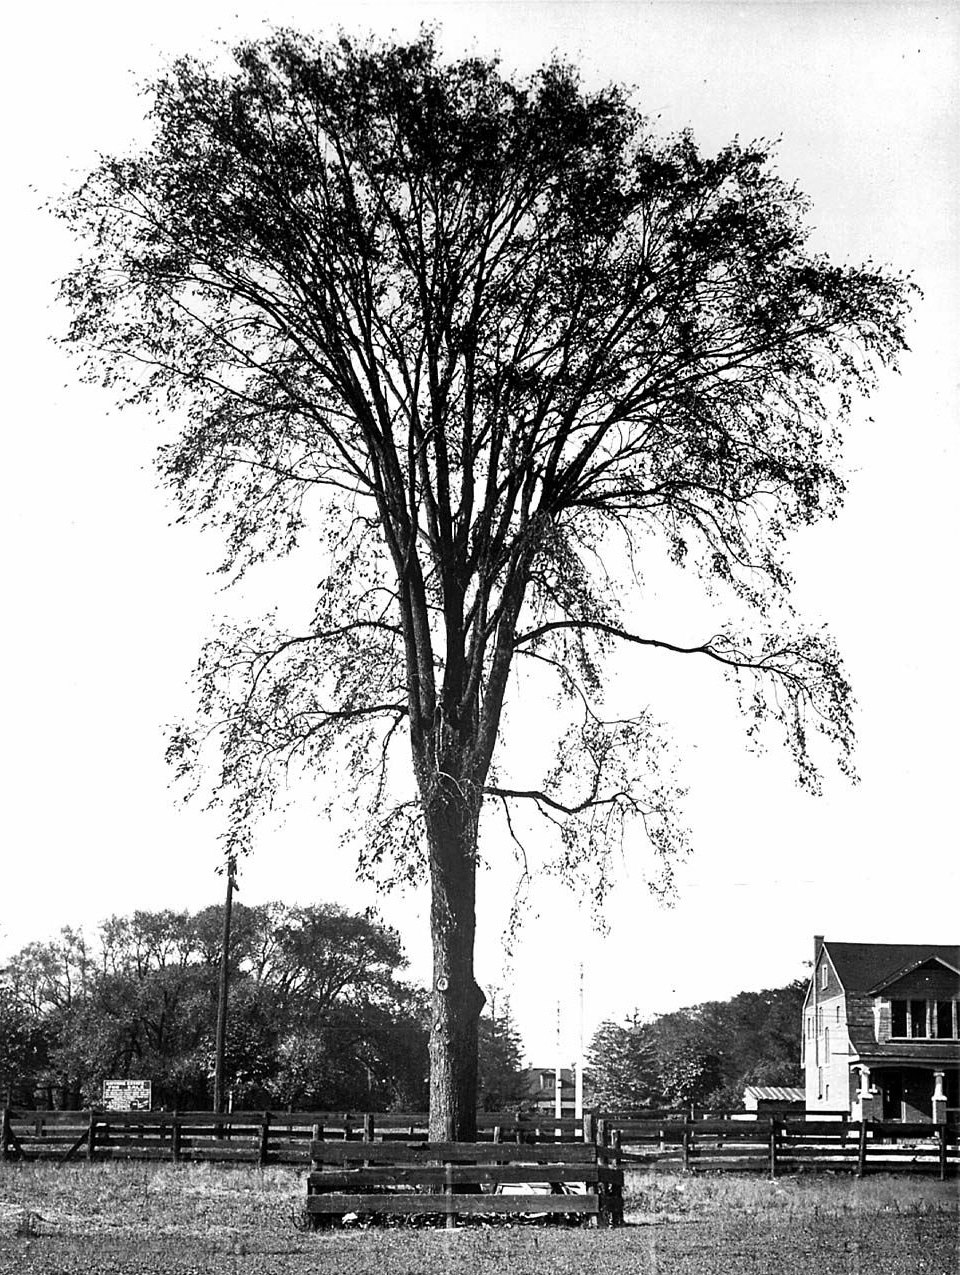 Lovers' Elm, Gwynne estate, Dufferin Street